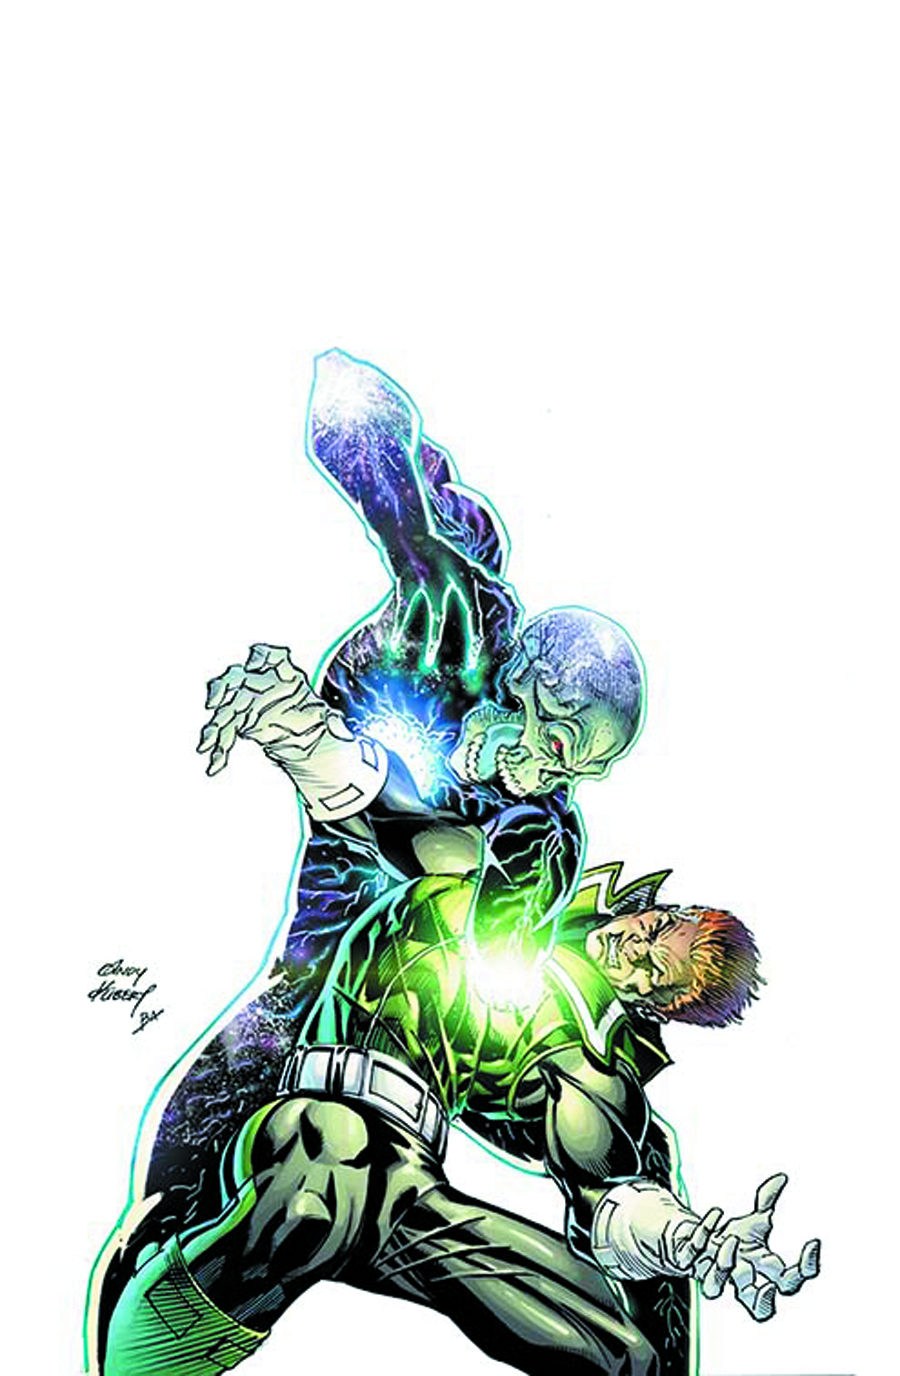 GREEN LANTERN CORPS #17 (WRATH)